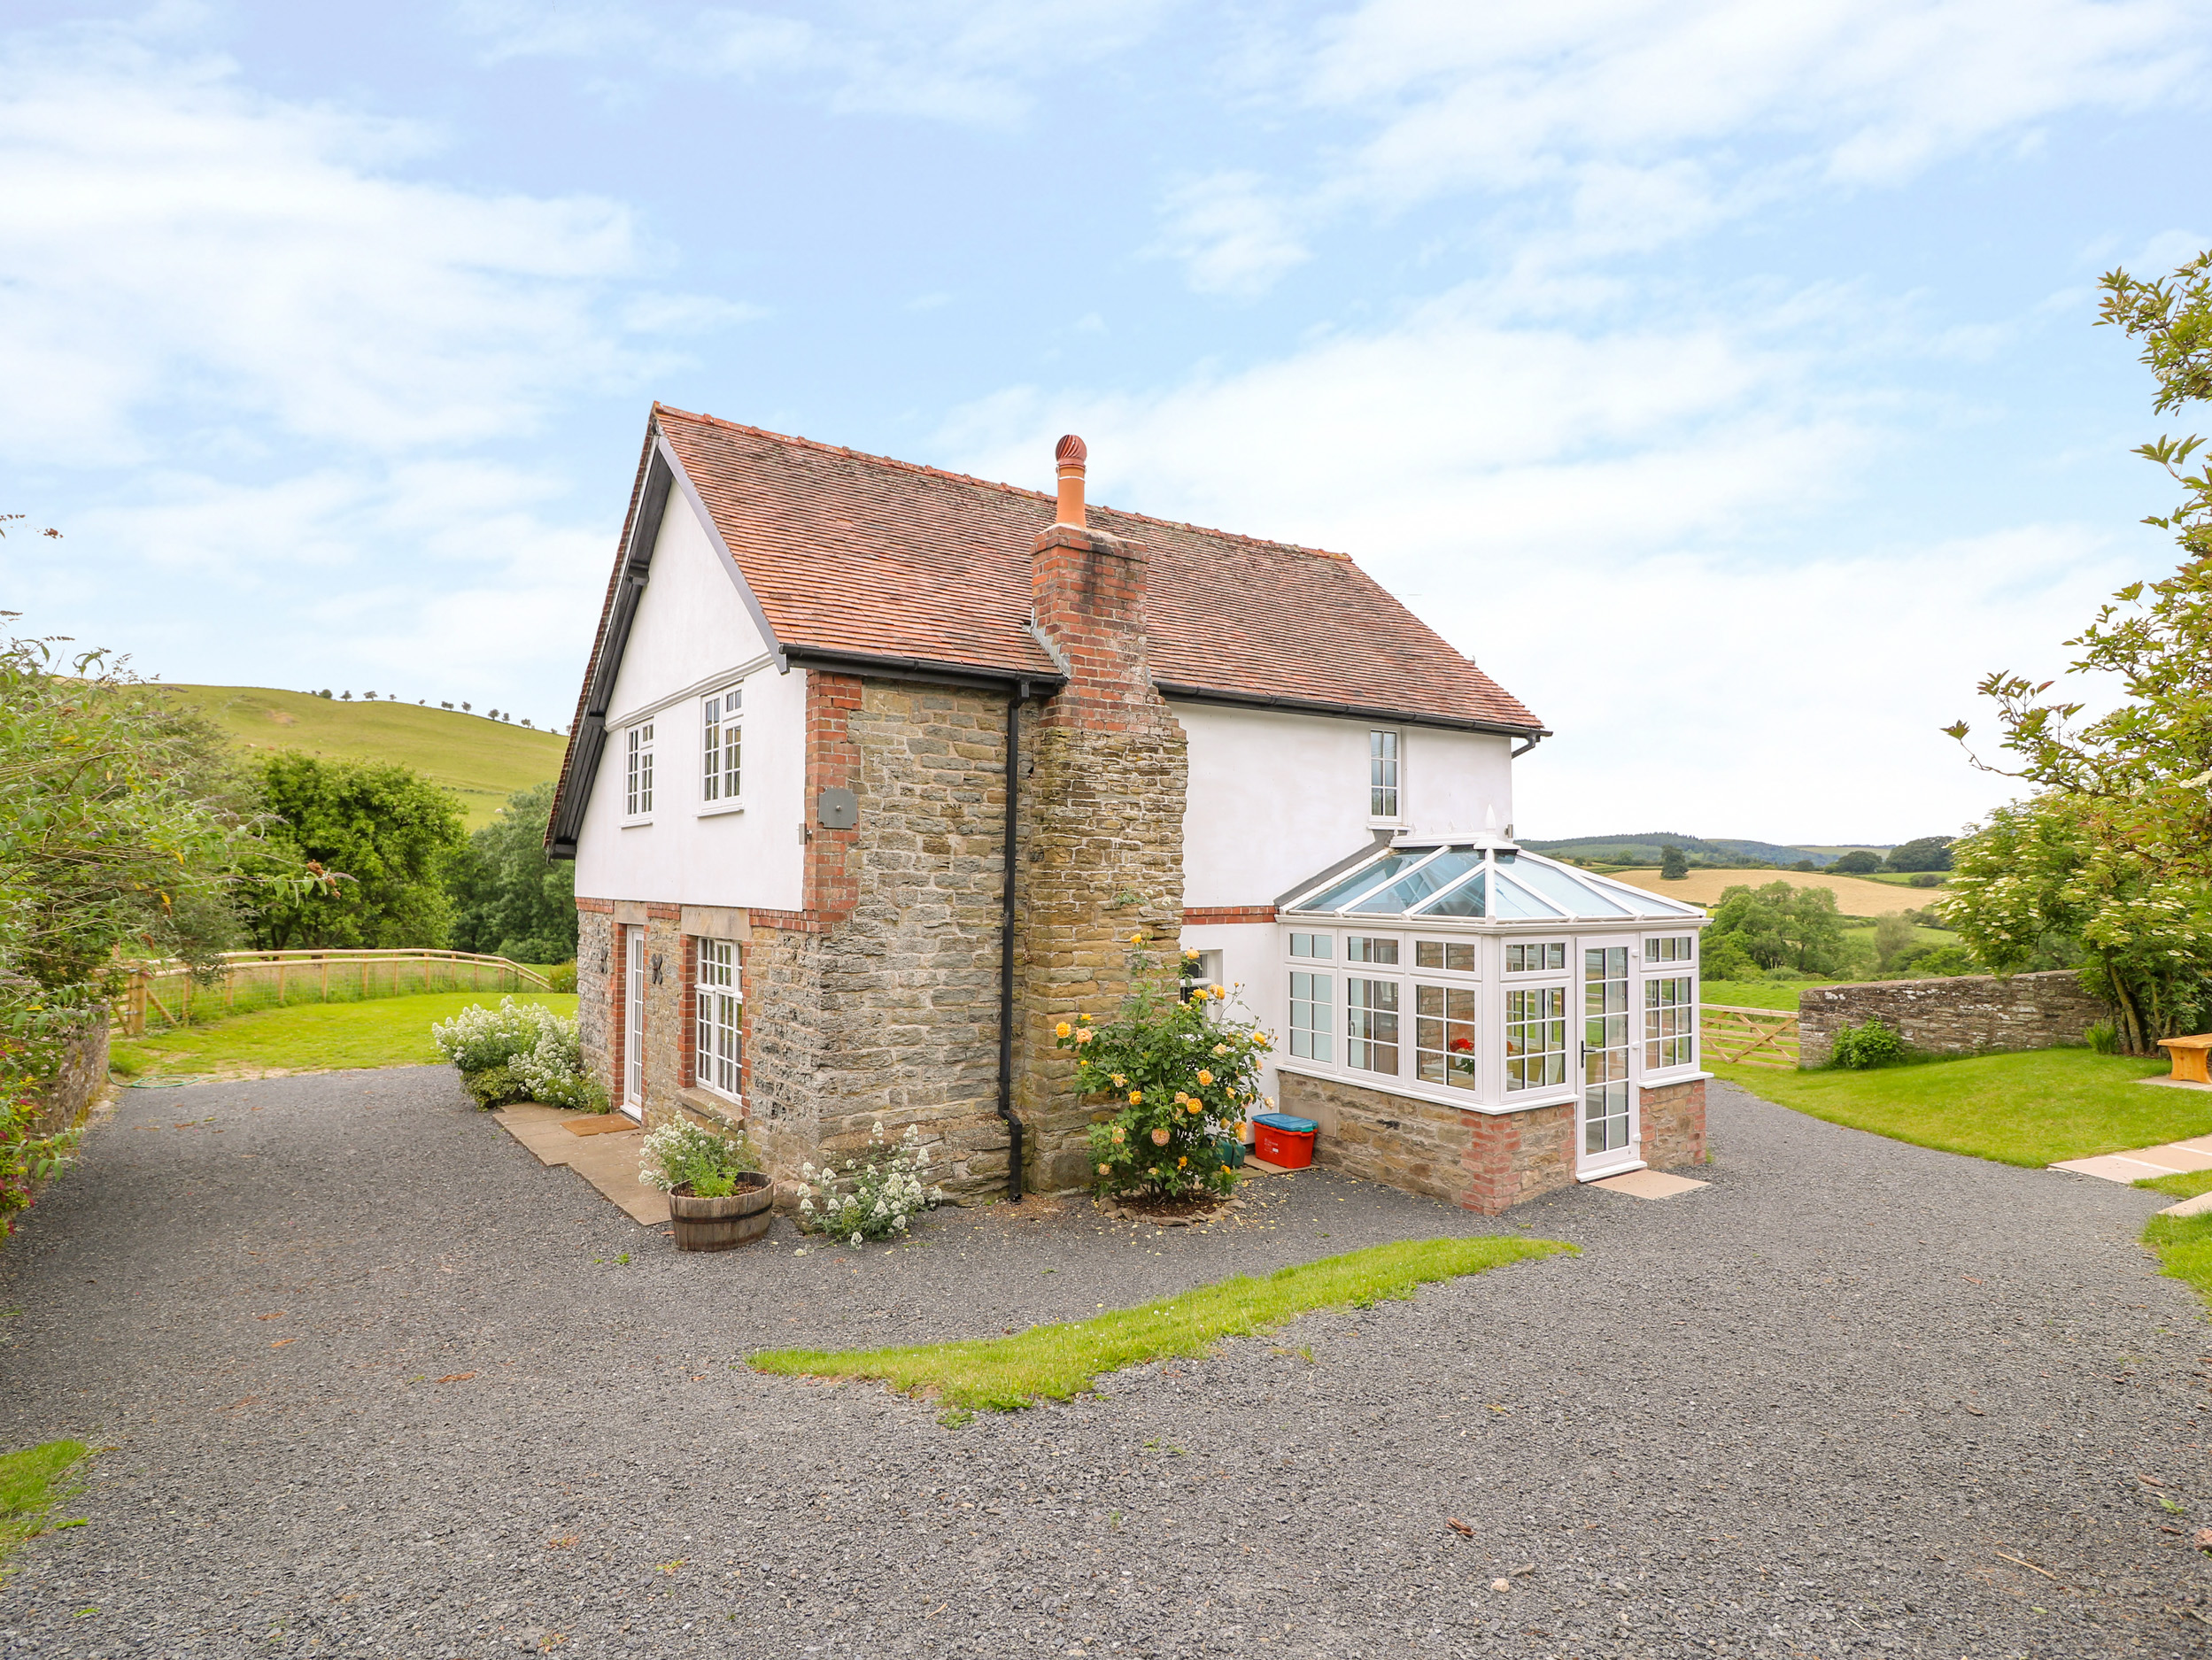 5 bedroom Cottage for rent in Knighton